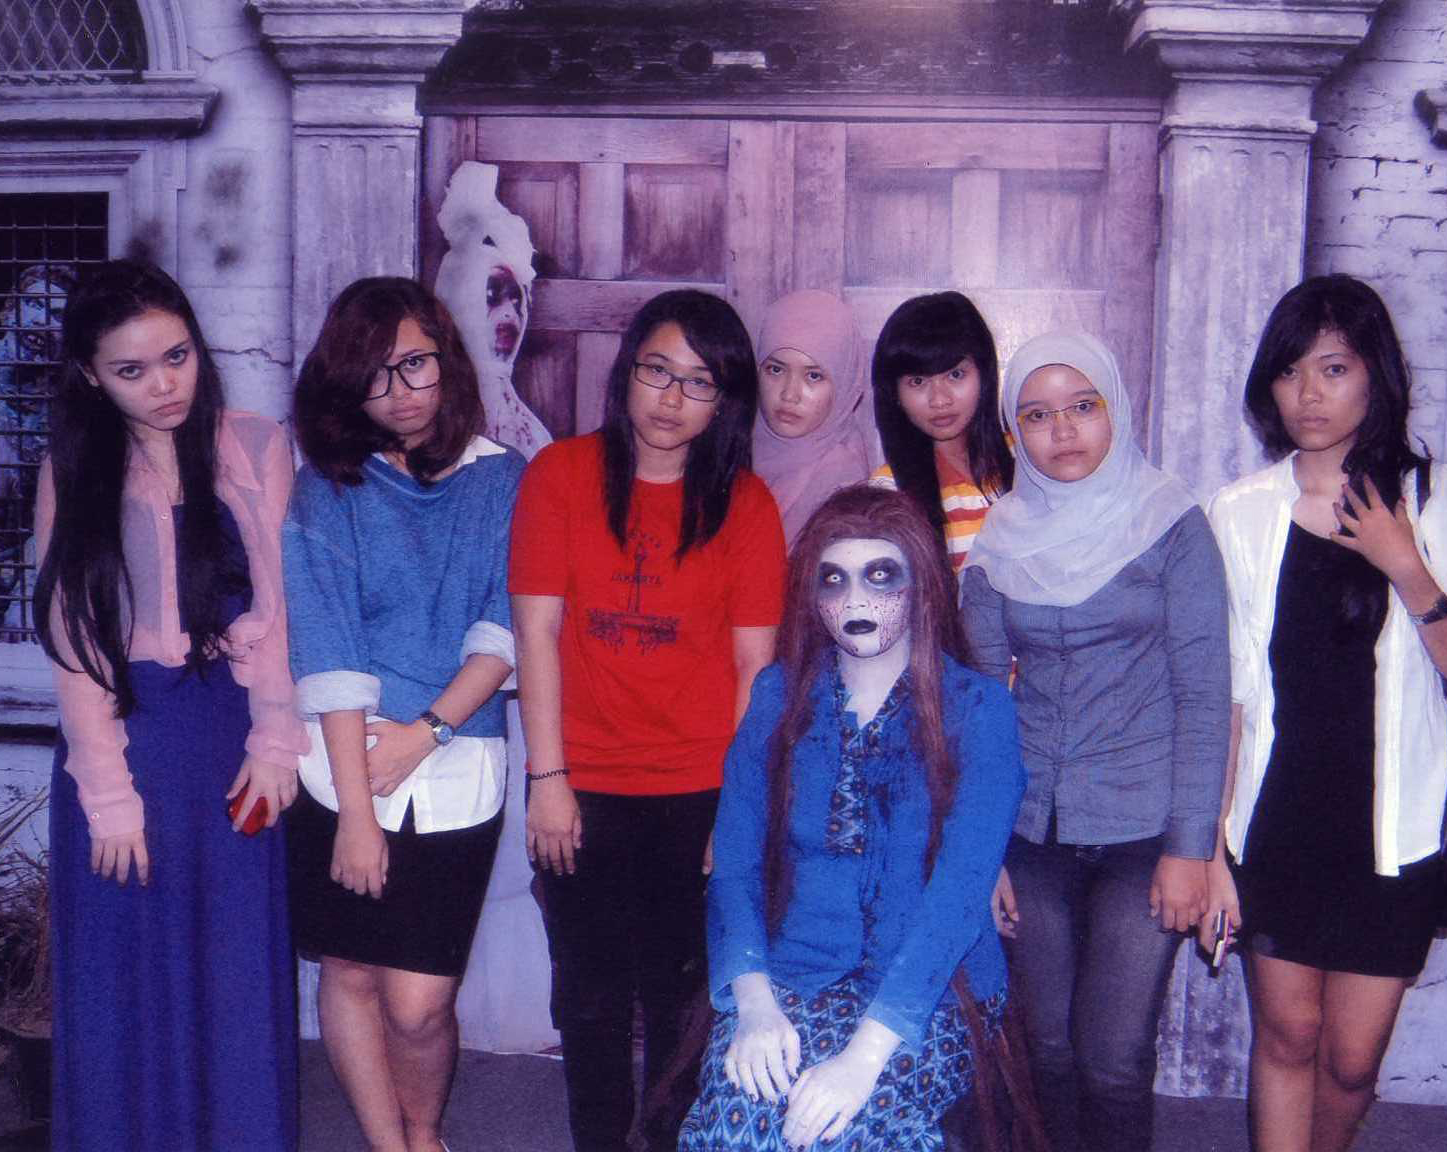 and this is my girls in ghost face (me, Charisma, Winie, Monica, Olin